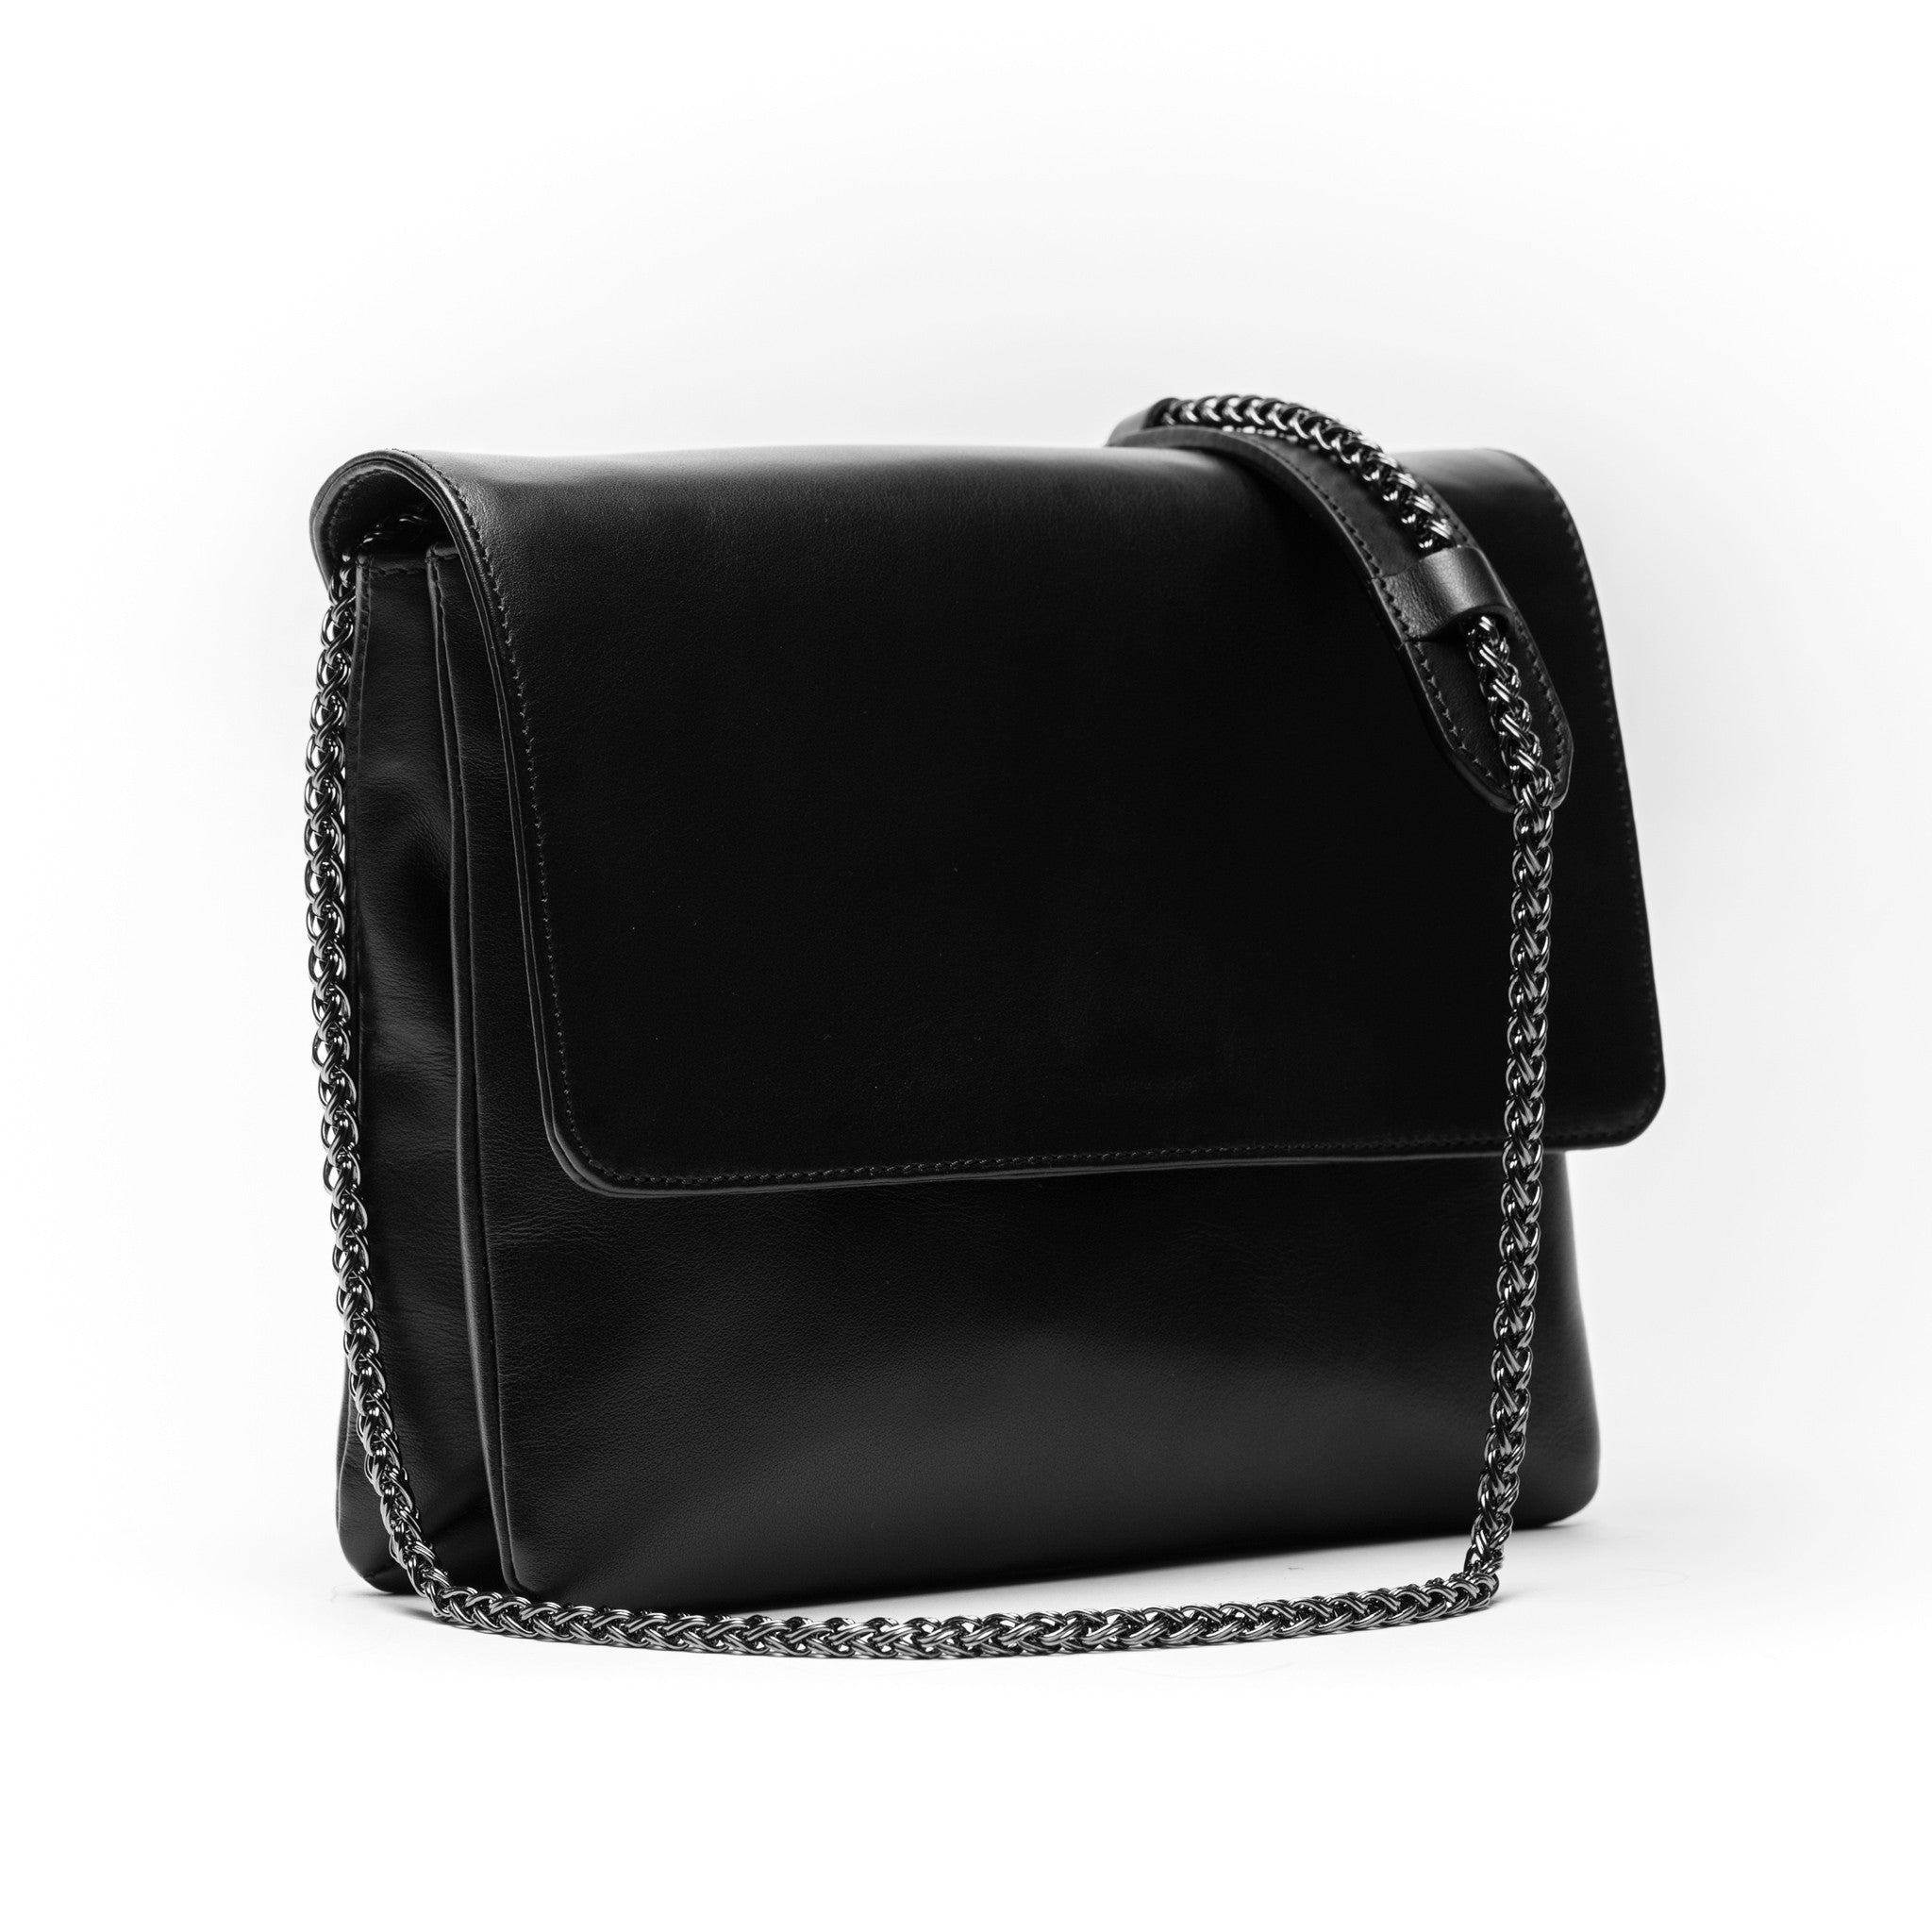 Sac-Cross-Body-Noir-Asolo-Lastelier-17.jpg